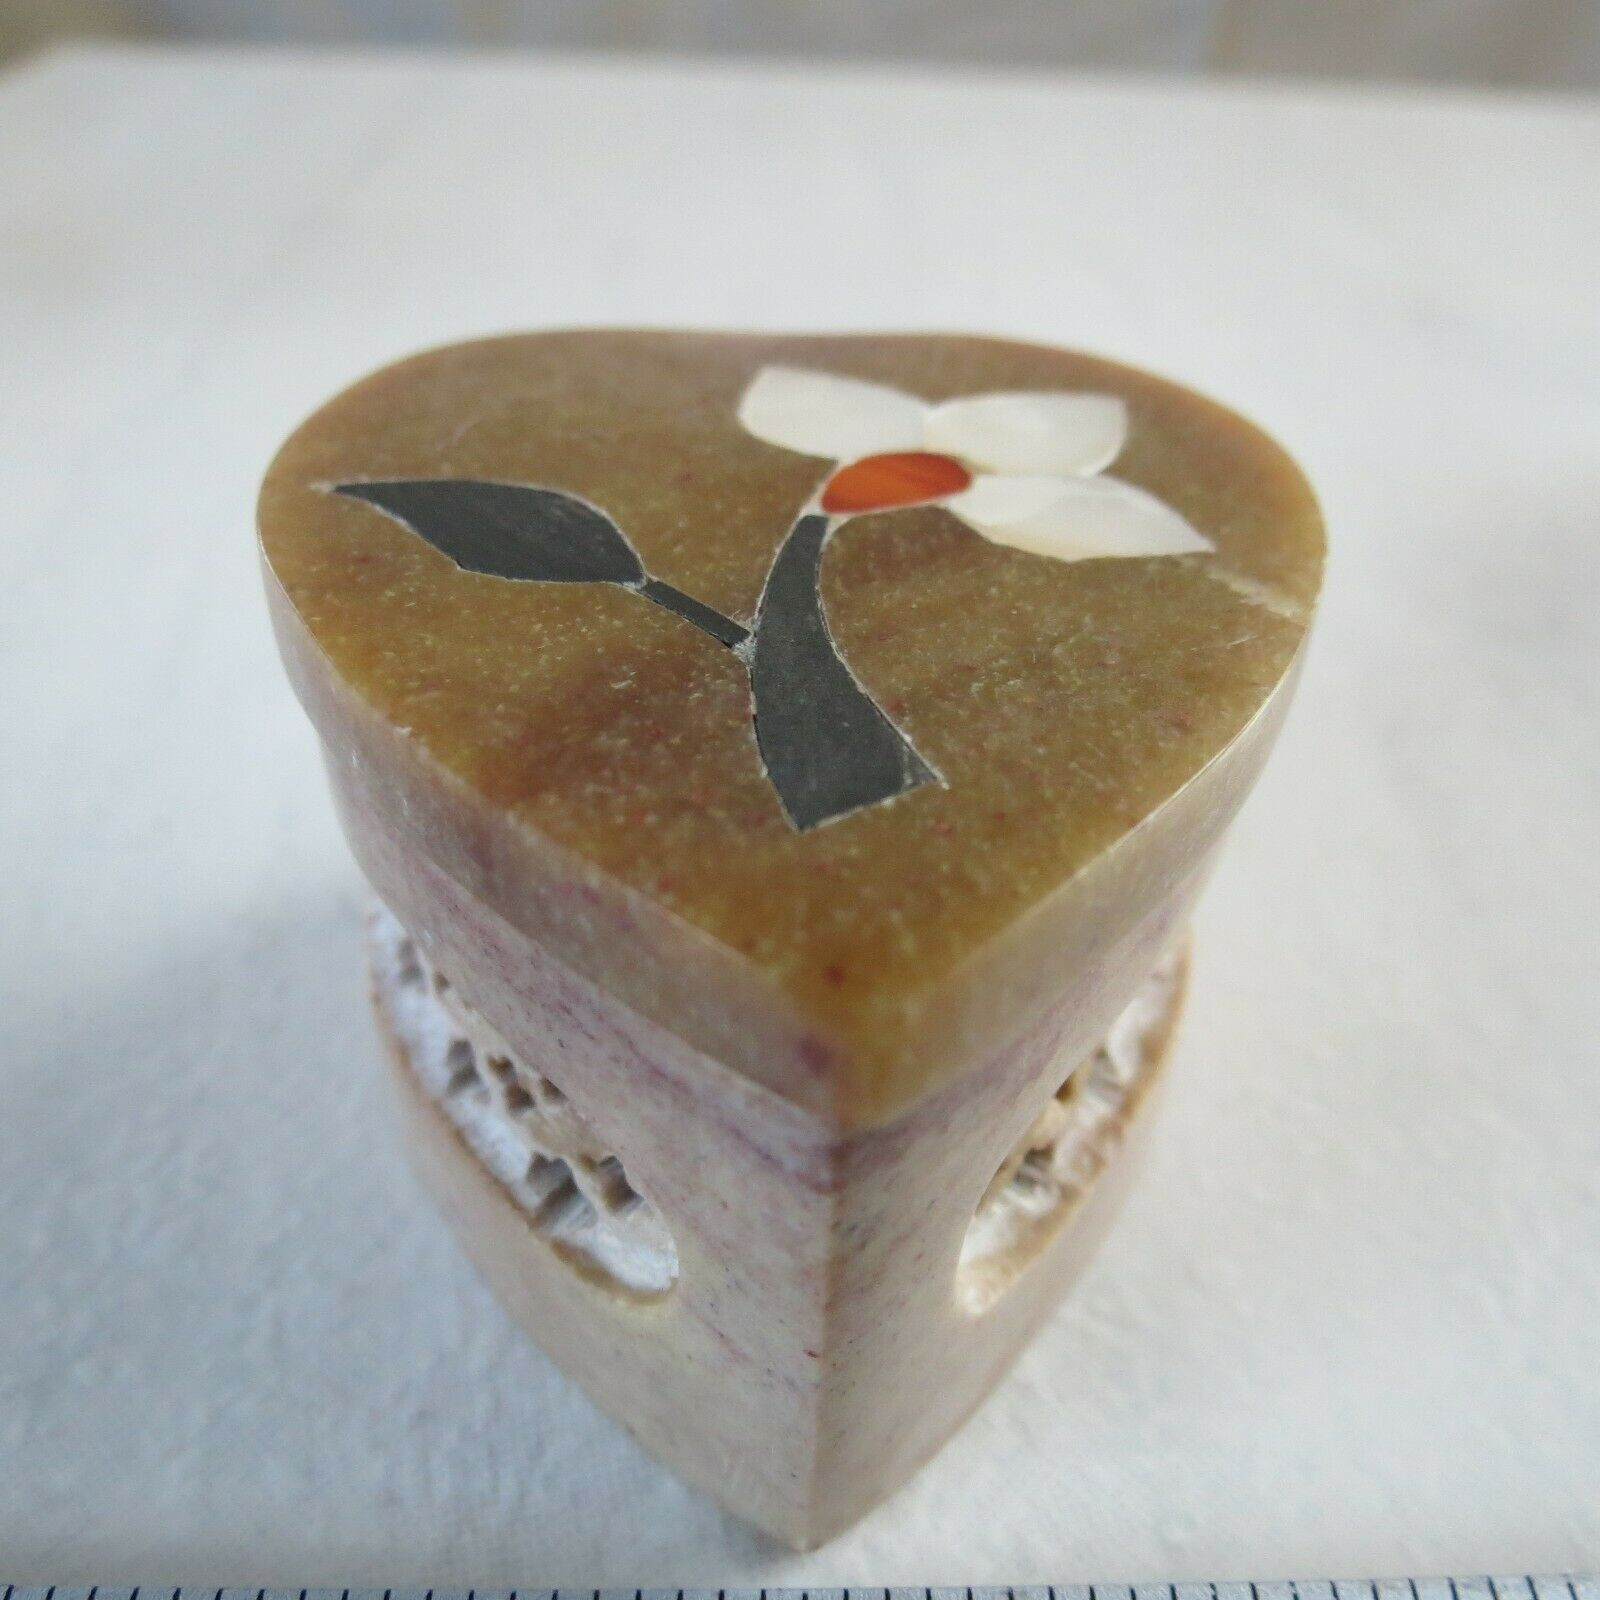 2 Inch Handmade Soapstone Heart Shaped Box Hand-Carved India MOP Agate Jet